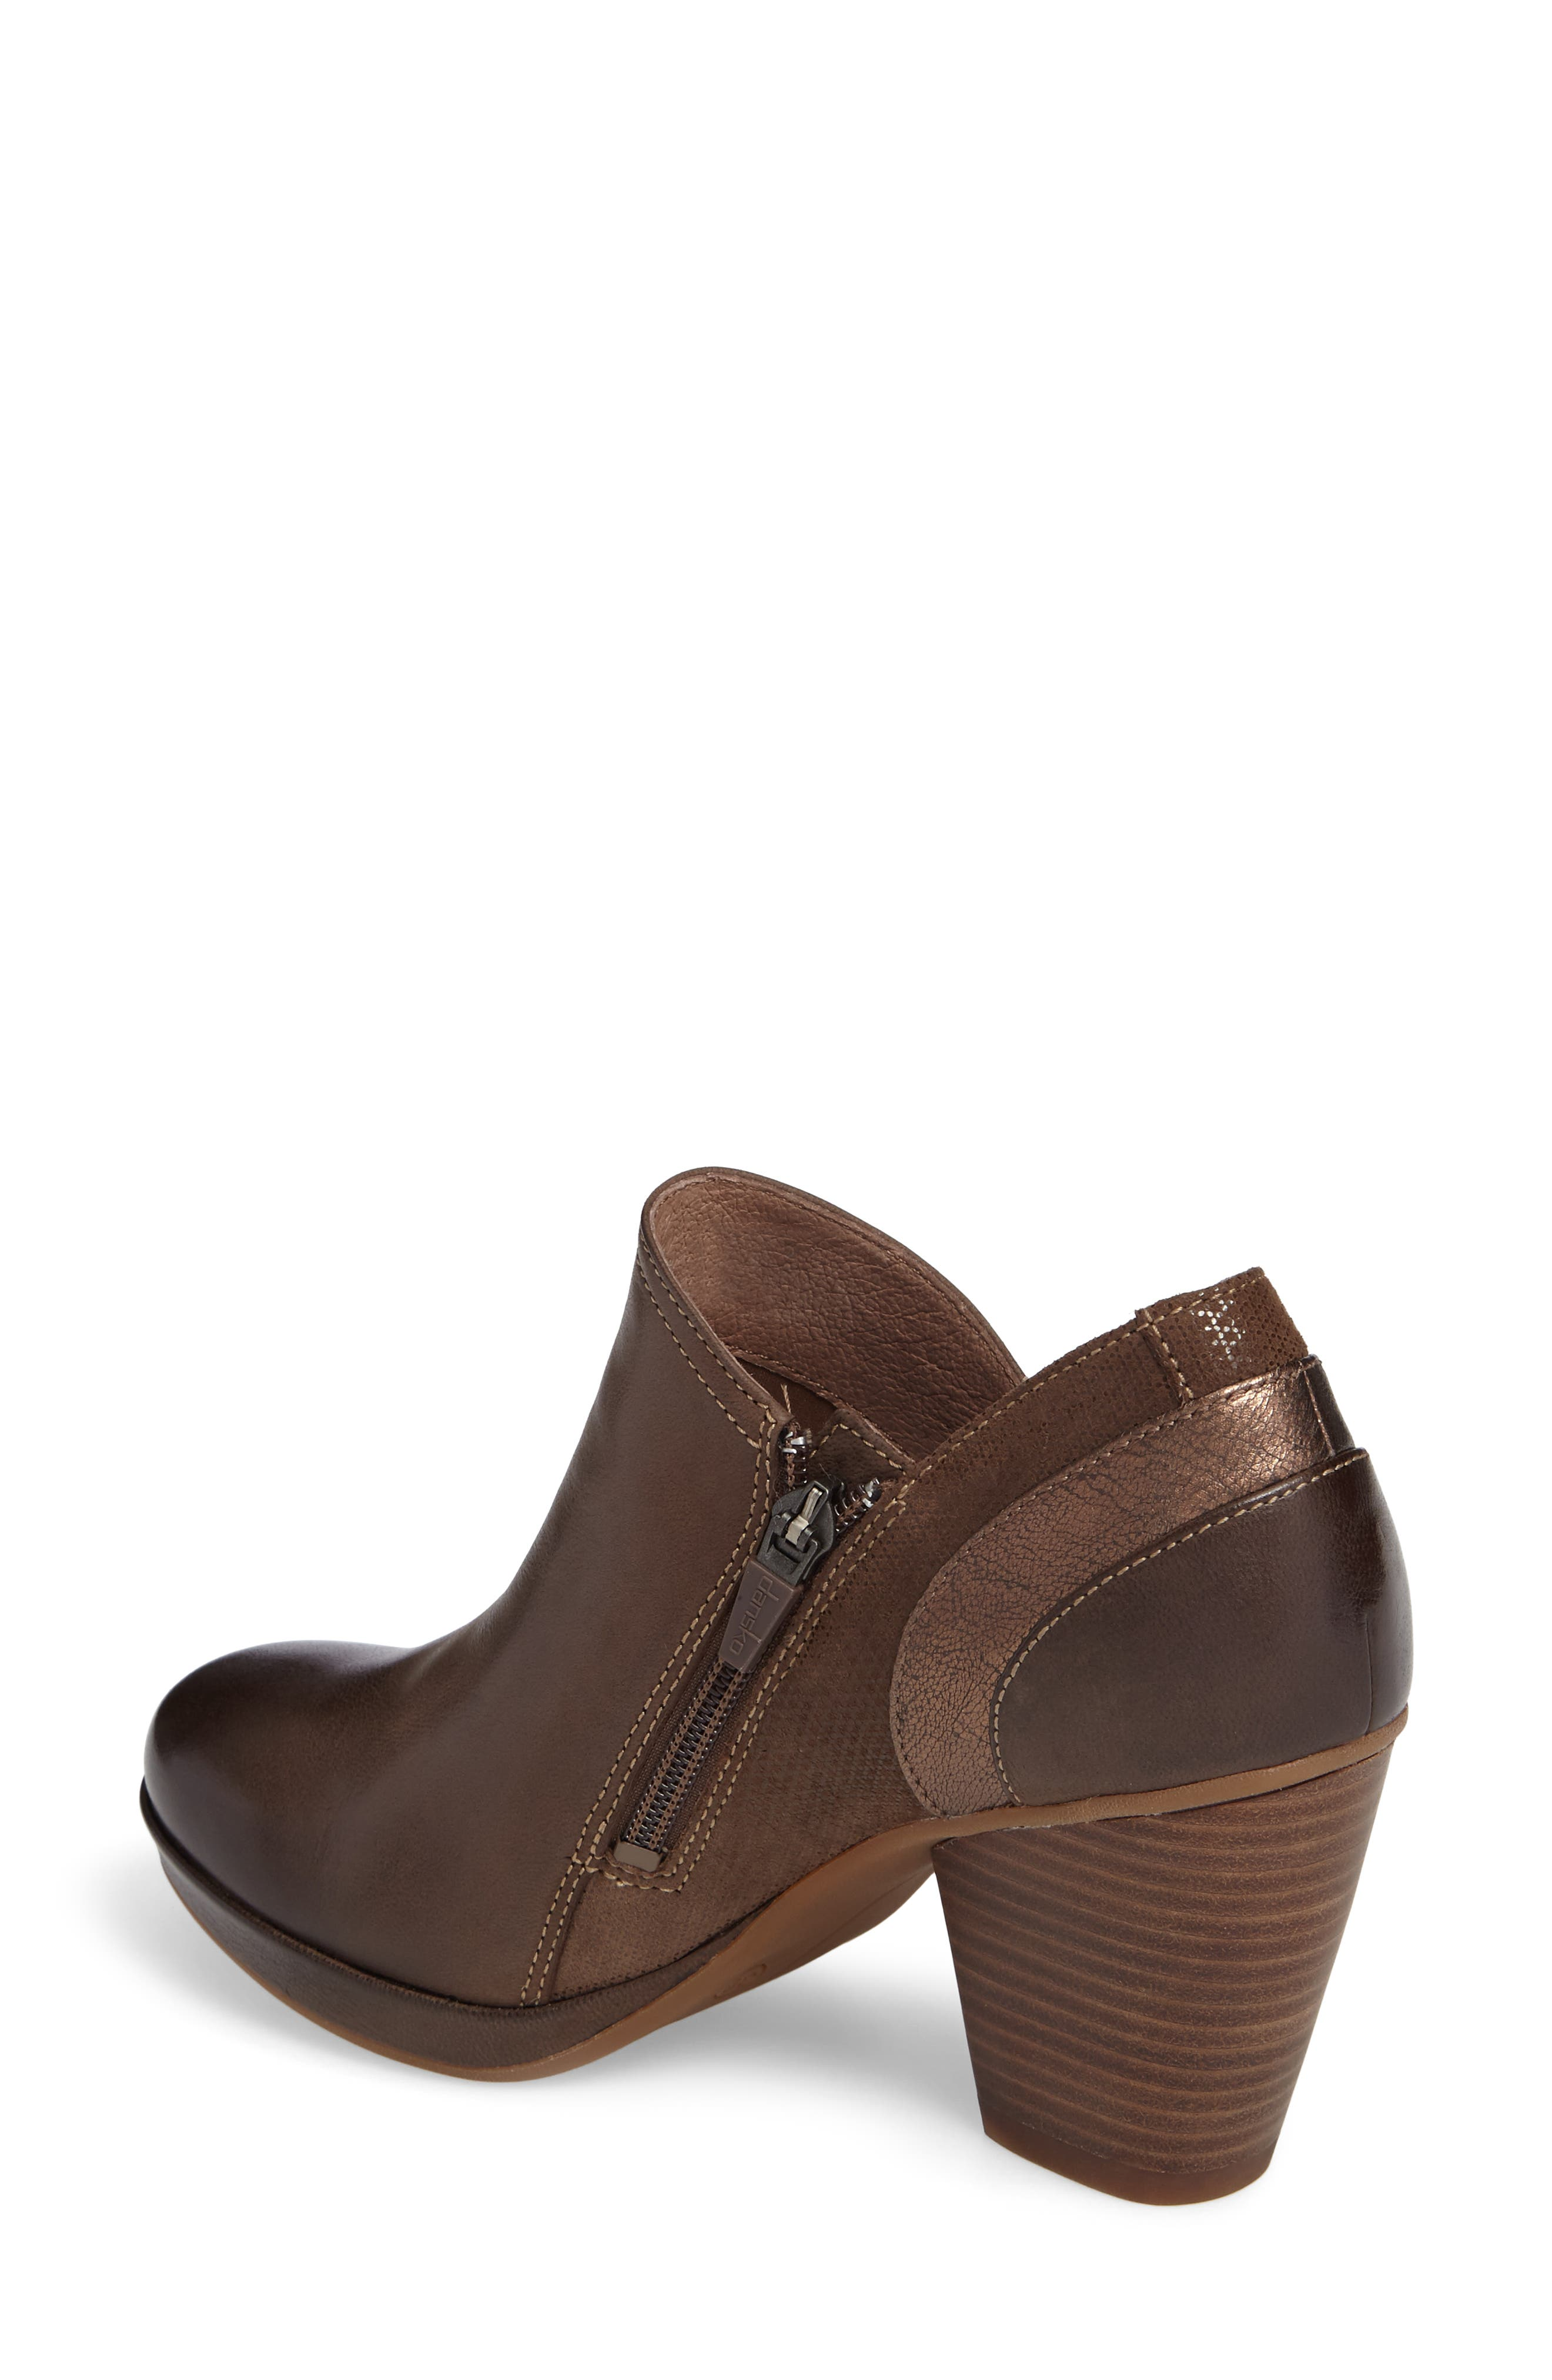 Marcia Bootie,                             Alternate thumbnail 2, color,                             Teak Burinished Leather